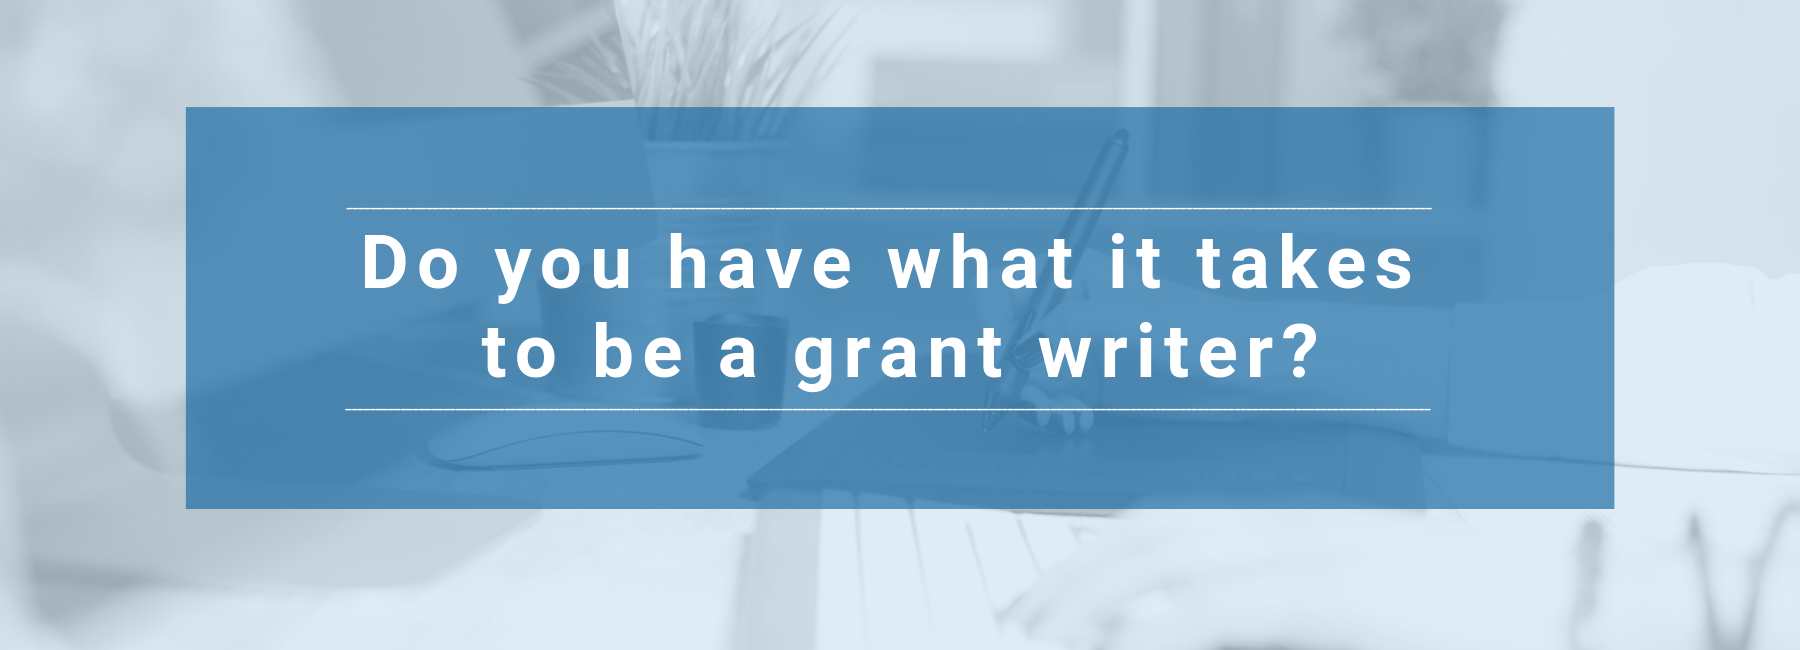 Teresa Huff - Nonprofit Grant Strategist - Grant Writing Mentor